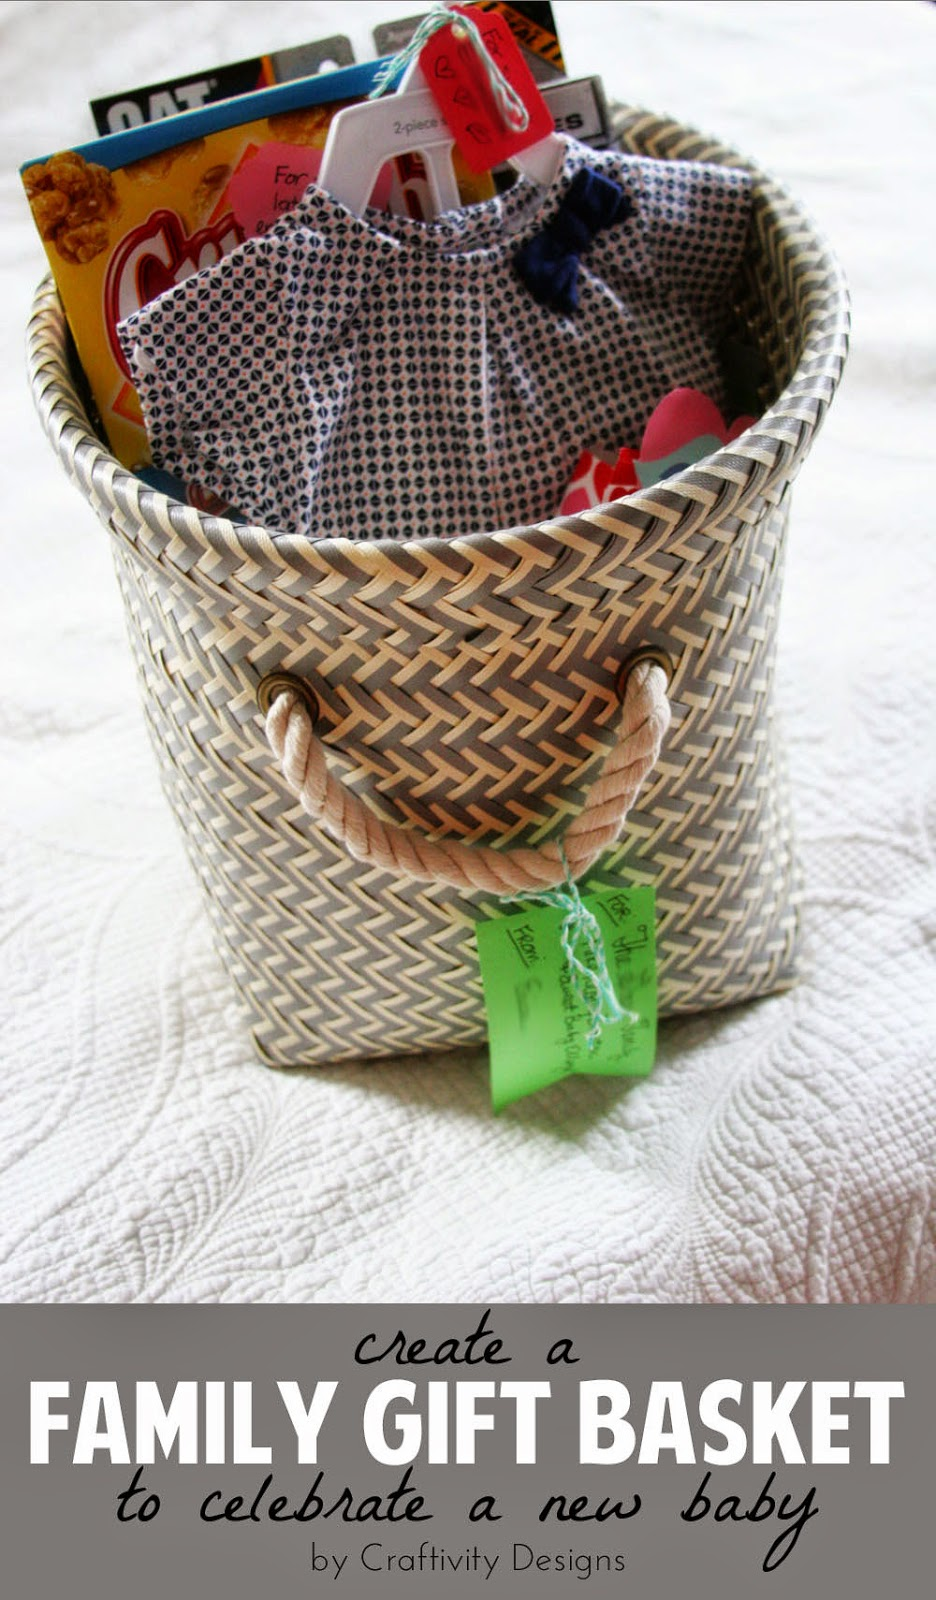 For a second {or third, or fourth, or...) baby, put together a family gift basket. Include something special for the new big brother(s)/sister(s)! // by Craftivity Designs